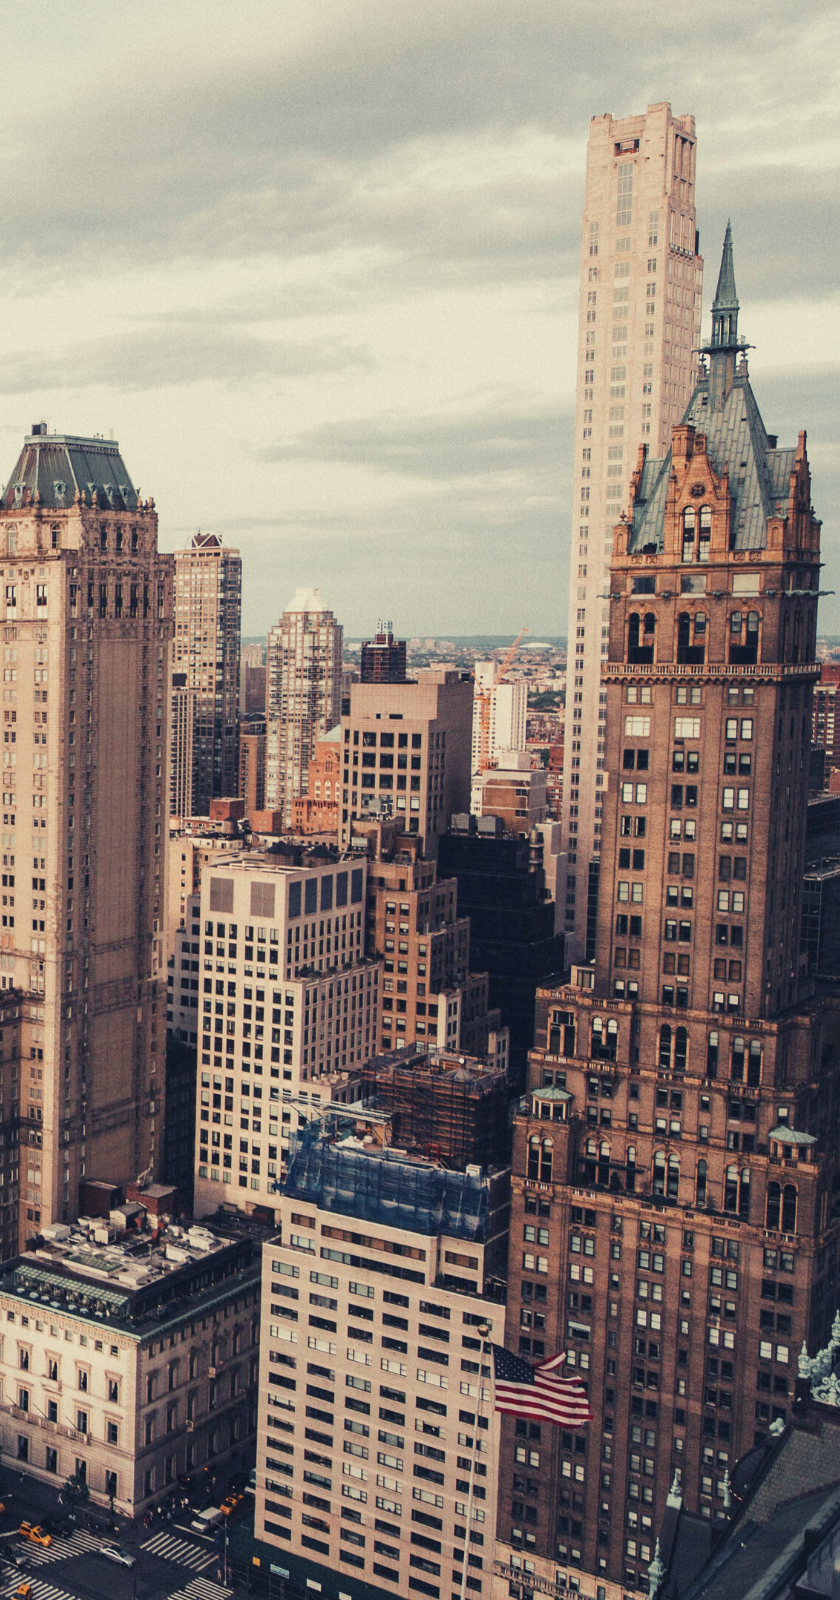 The Best 25 New York City Wallpapers To Download Free For Iphone City Wallpaper New York Pictures City Tumblr